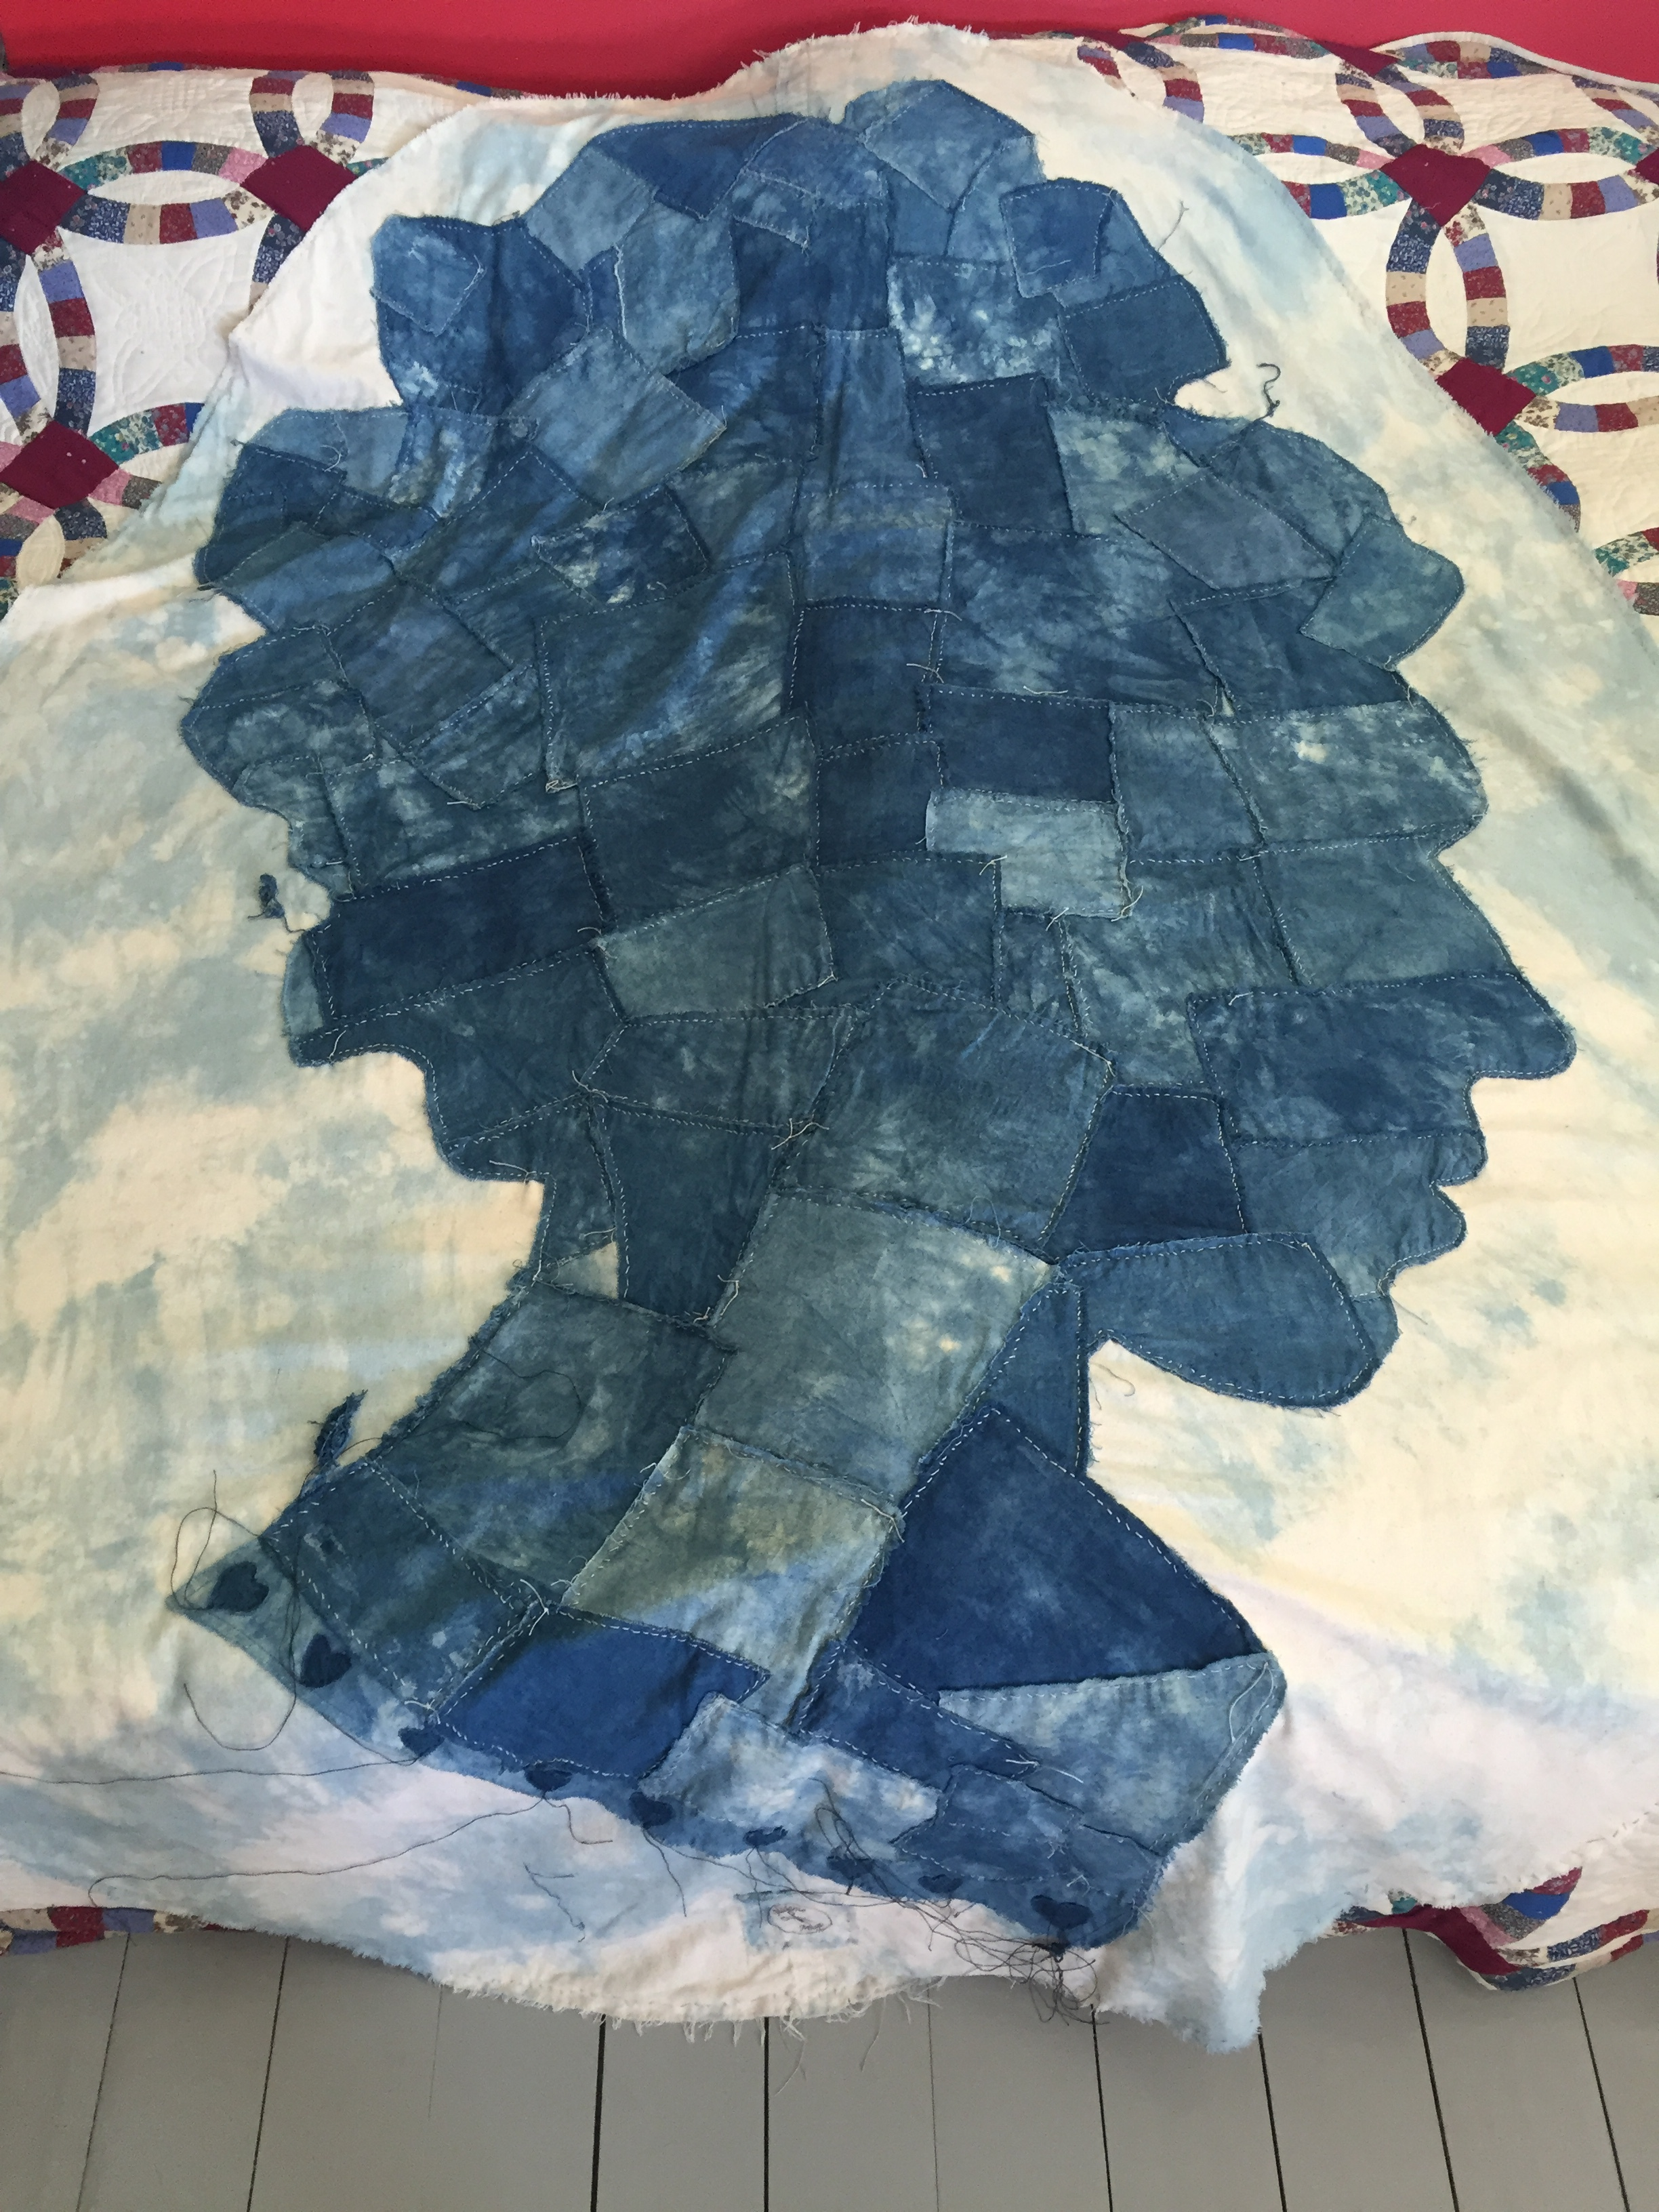 A quilt, featuring Eliza Pinckney's profile, hand-dyed and stitched by Mme. Magar.